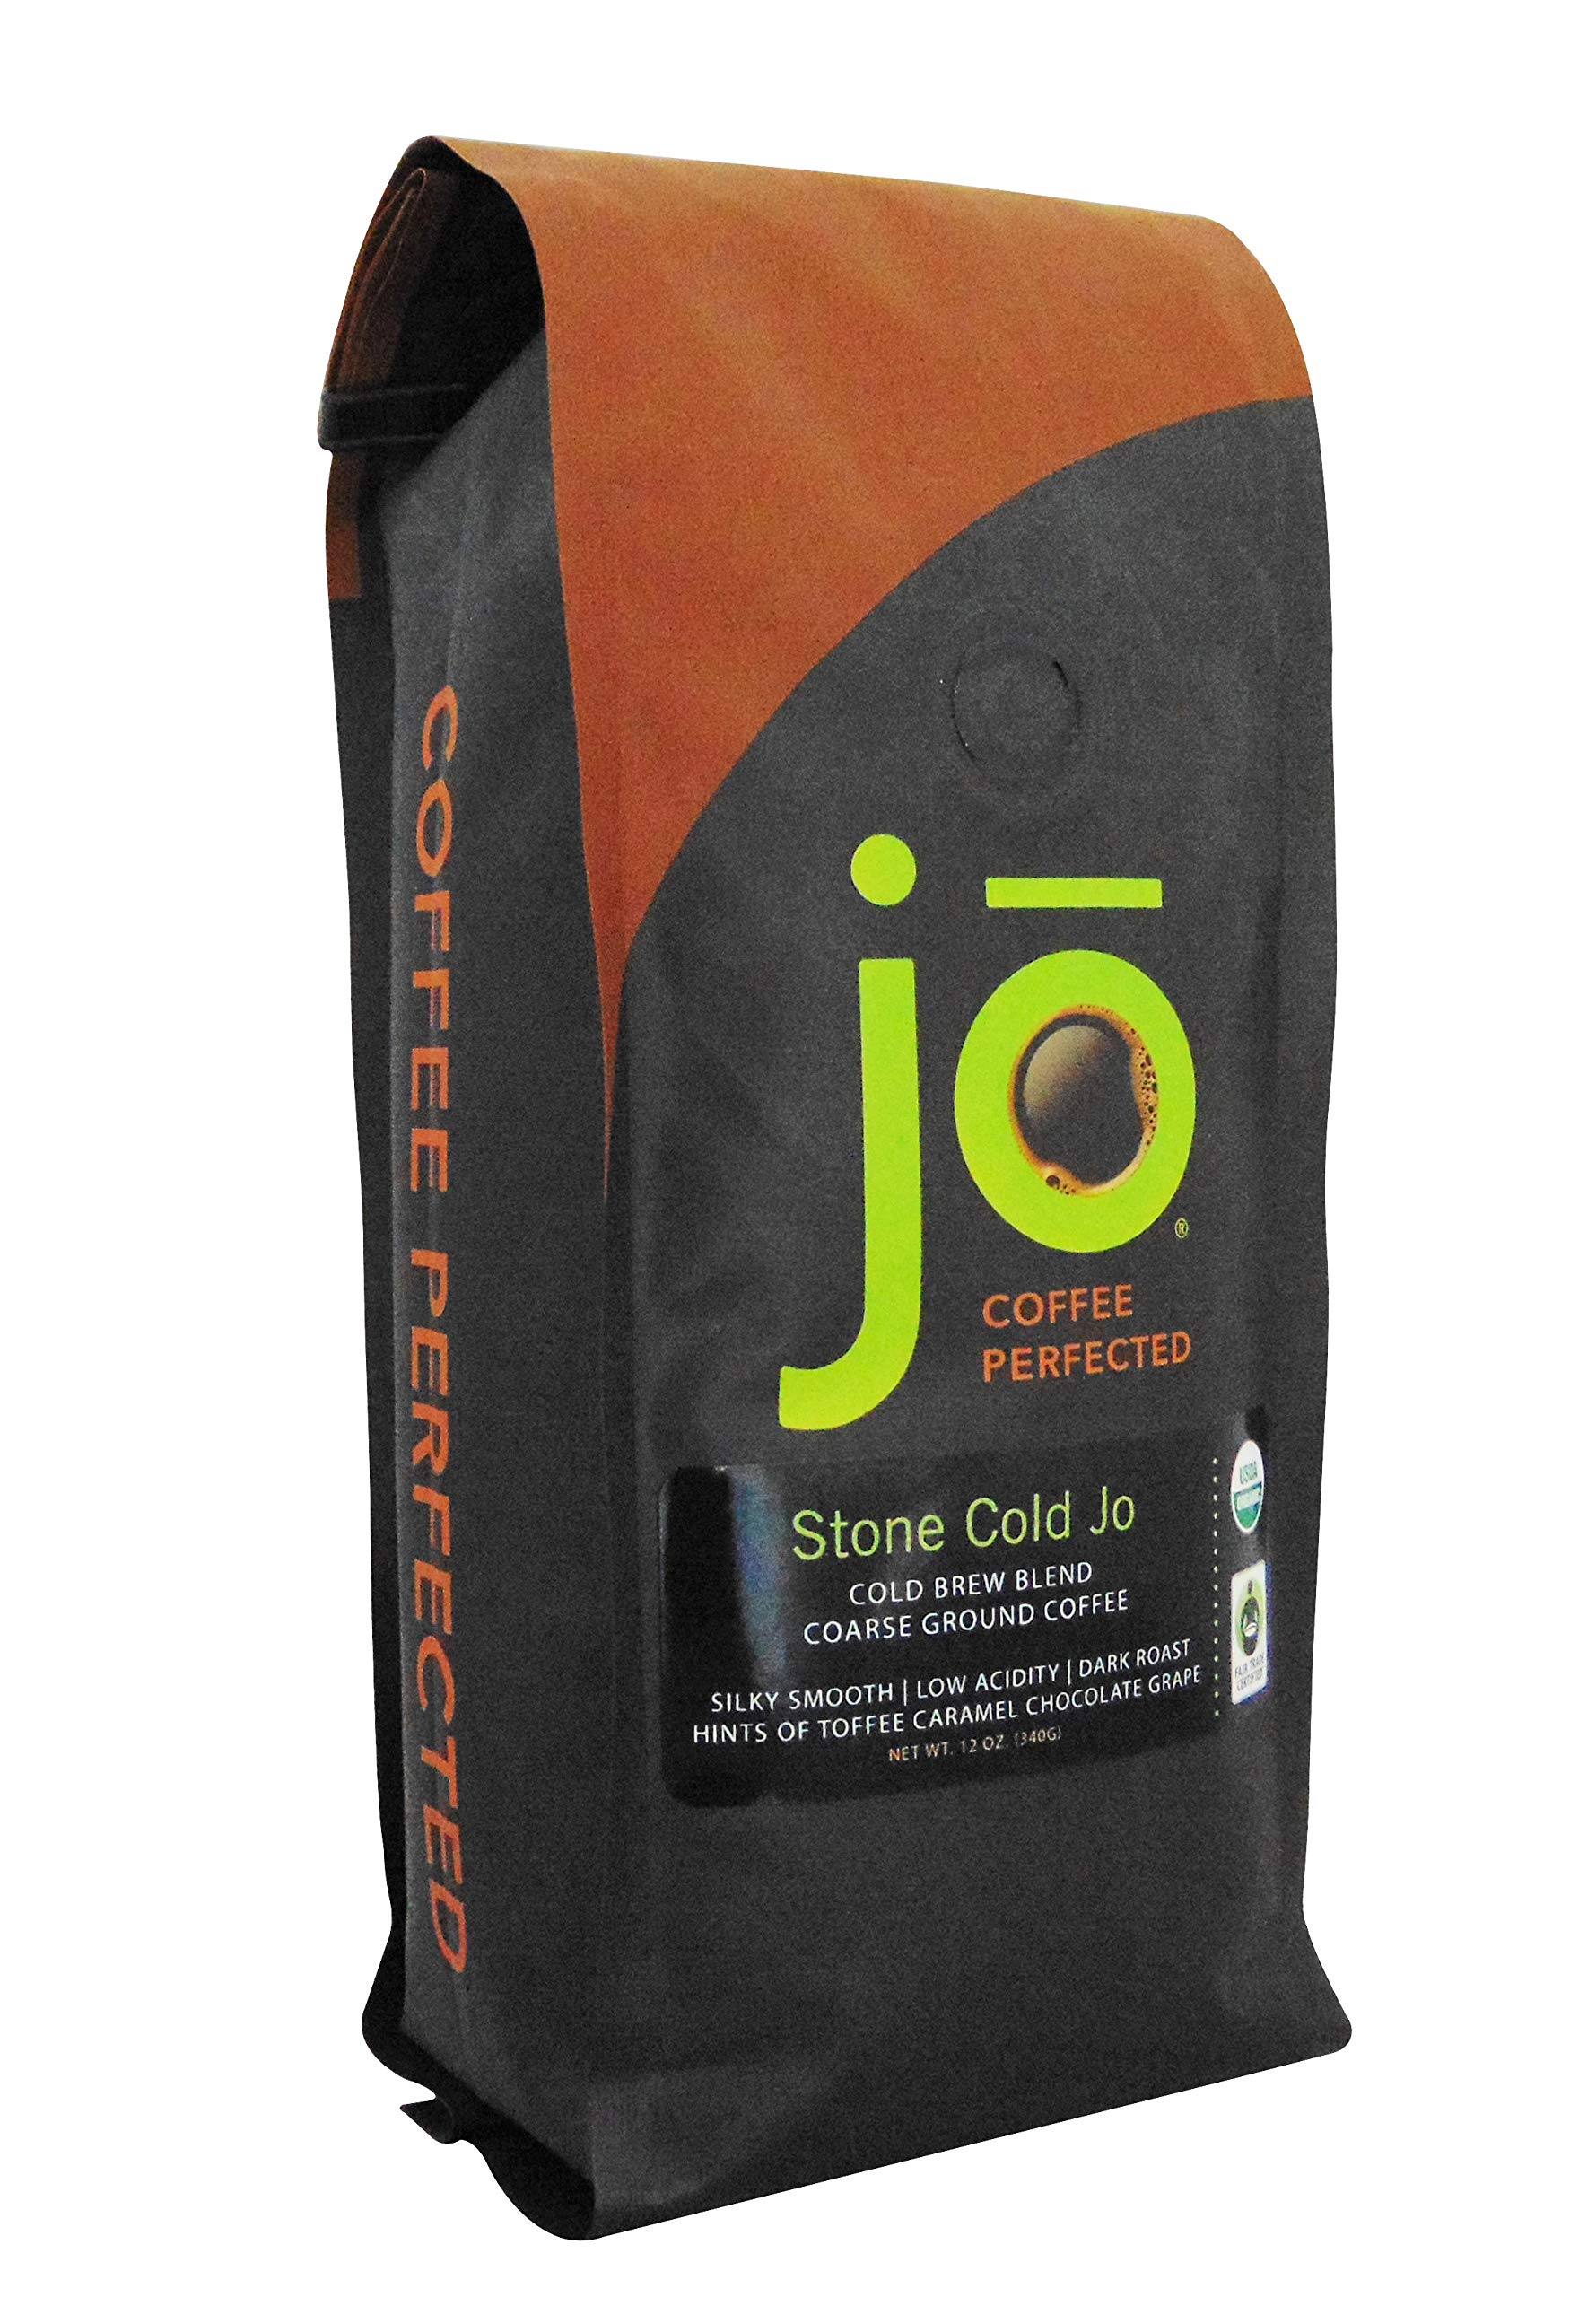 STONE COLD JO: 12 oz, Cold Brew Coffee Blend, Dark Roast, Coarse Ground Organic Coffee, Silky, Smooth, Low Acidity, USDA Certified Organic, Fair Trade Certified, NON-GMO, Great French Press Hot Brew